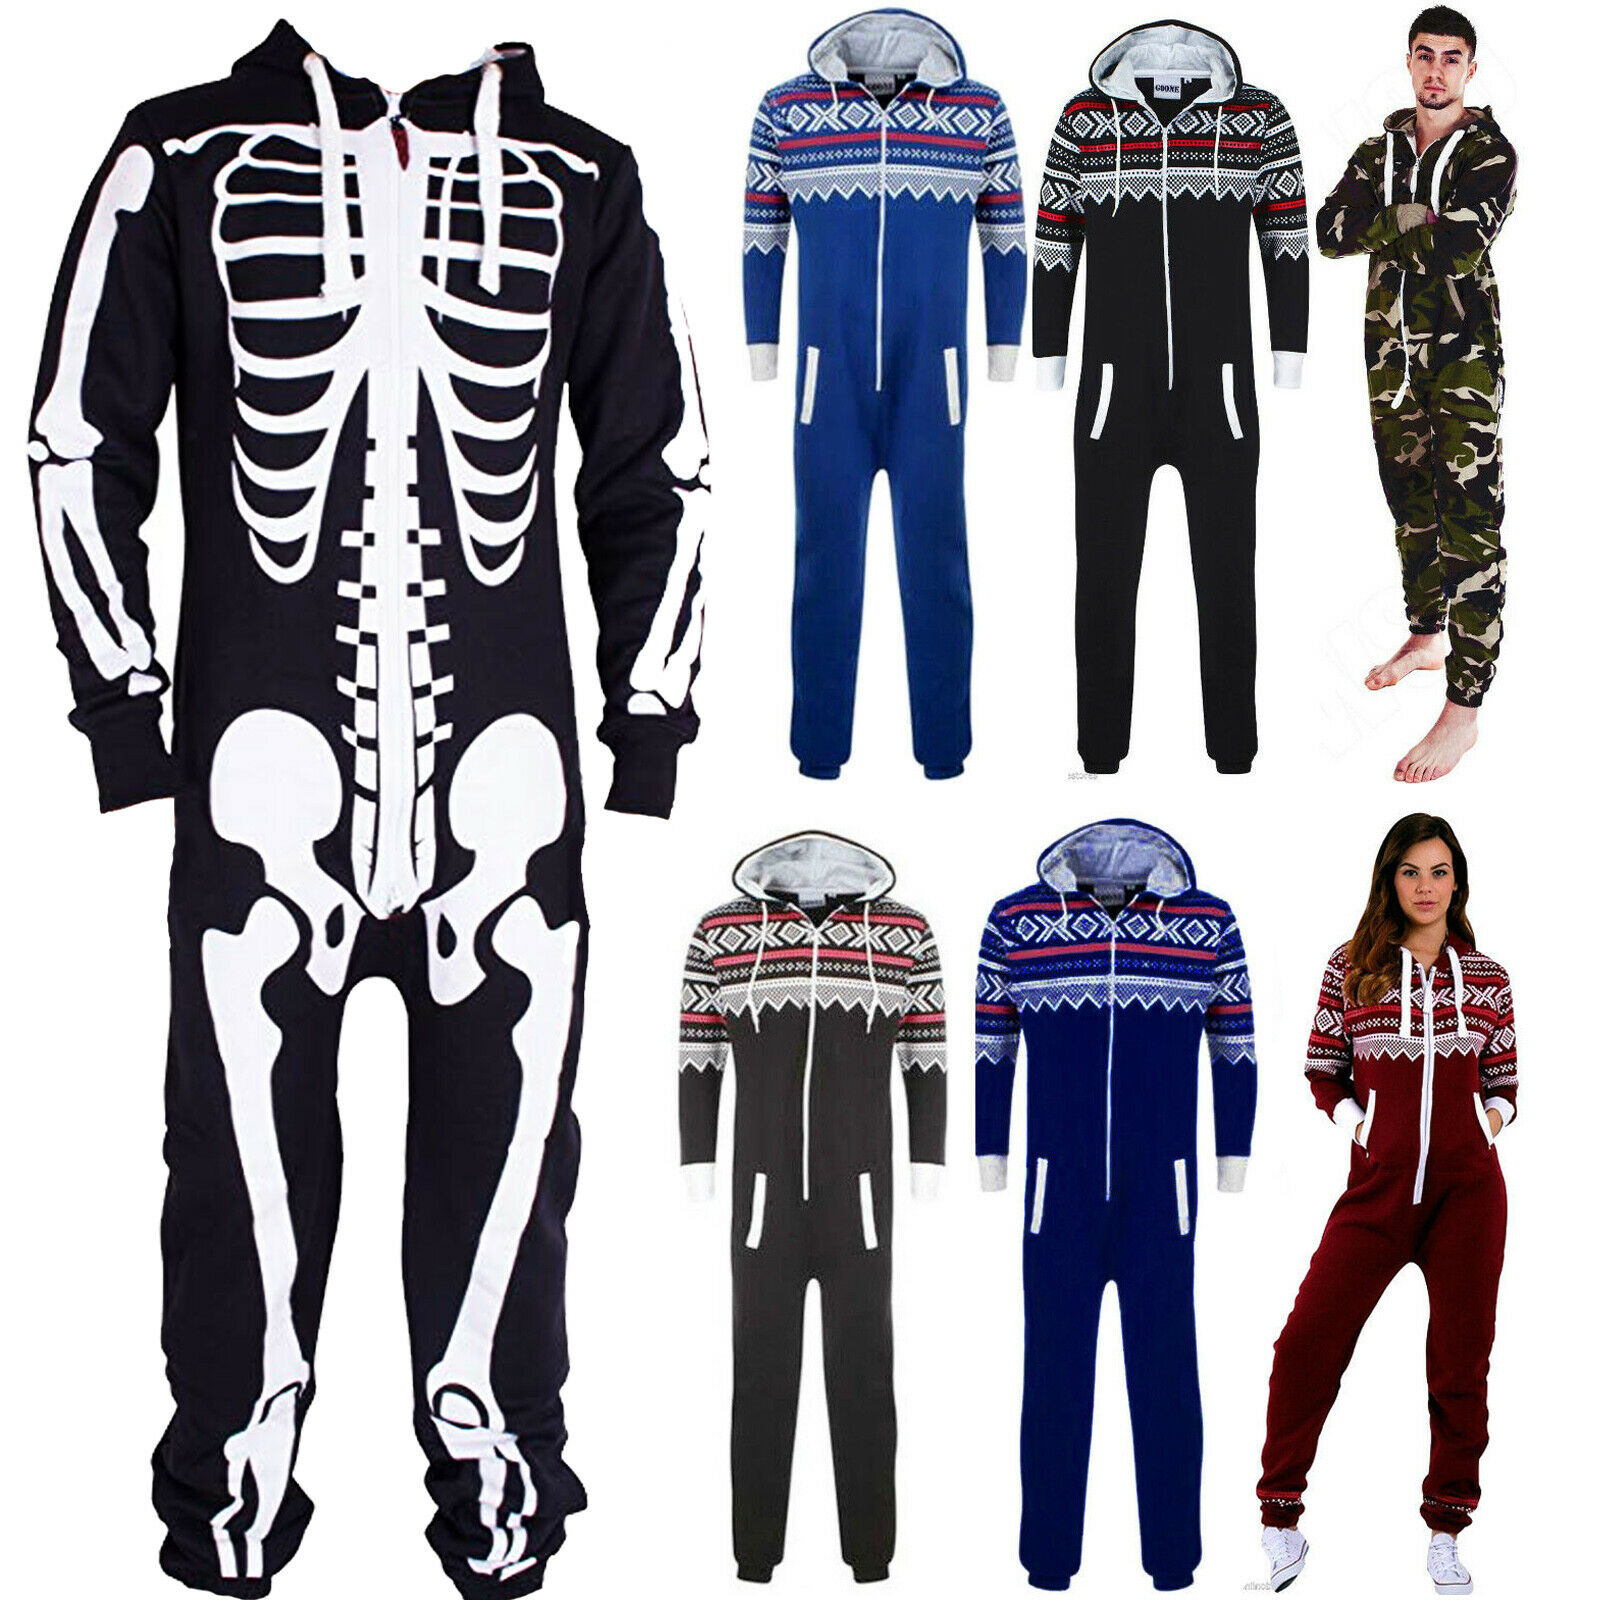 Unisex New Camouflage Aztec one piece Jumpsuit skeleton All in one Small to XXXL